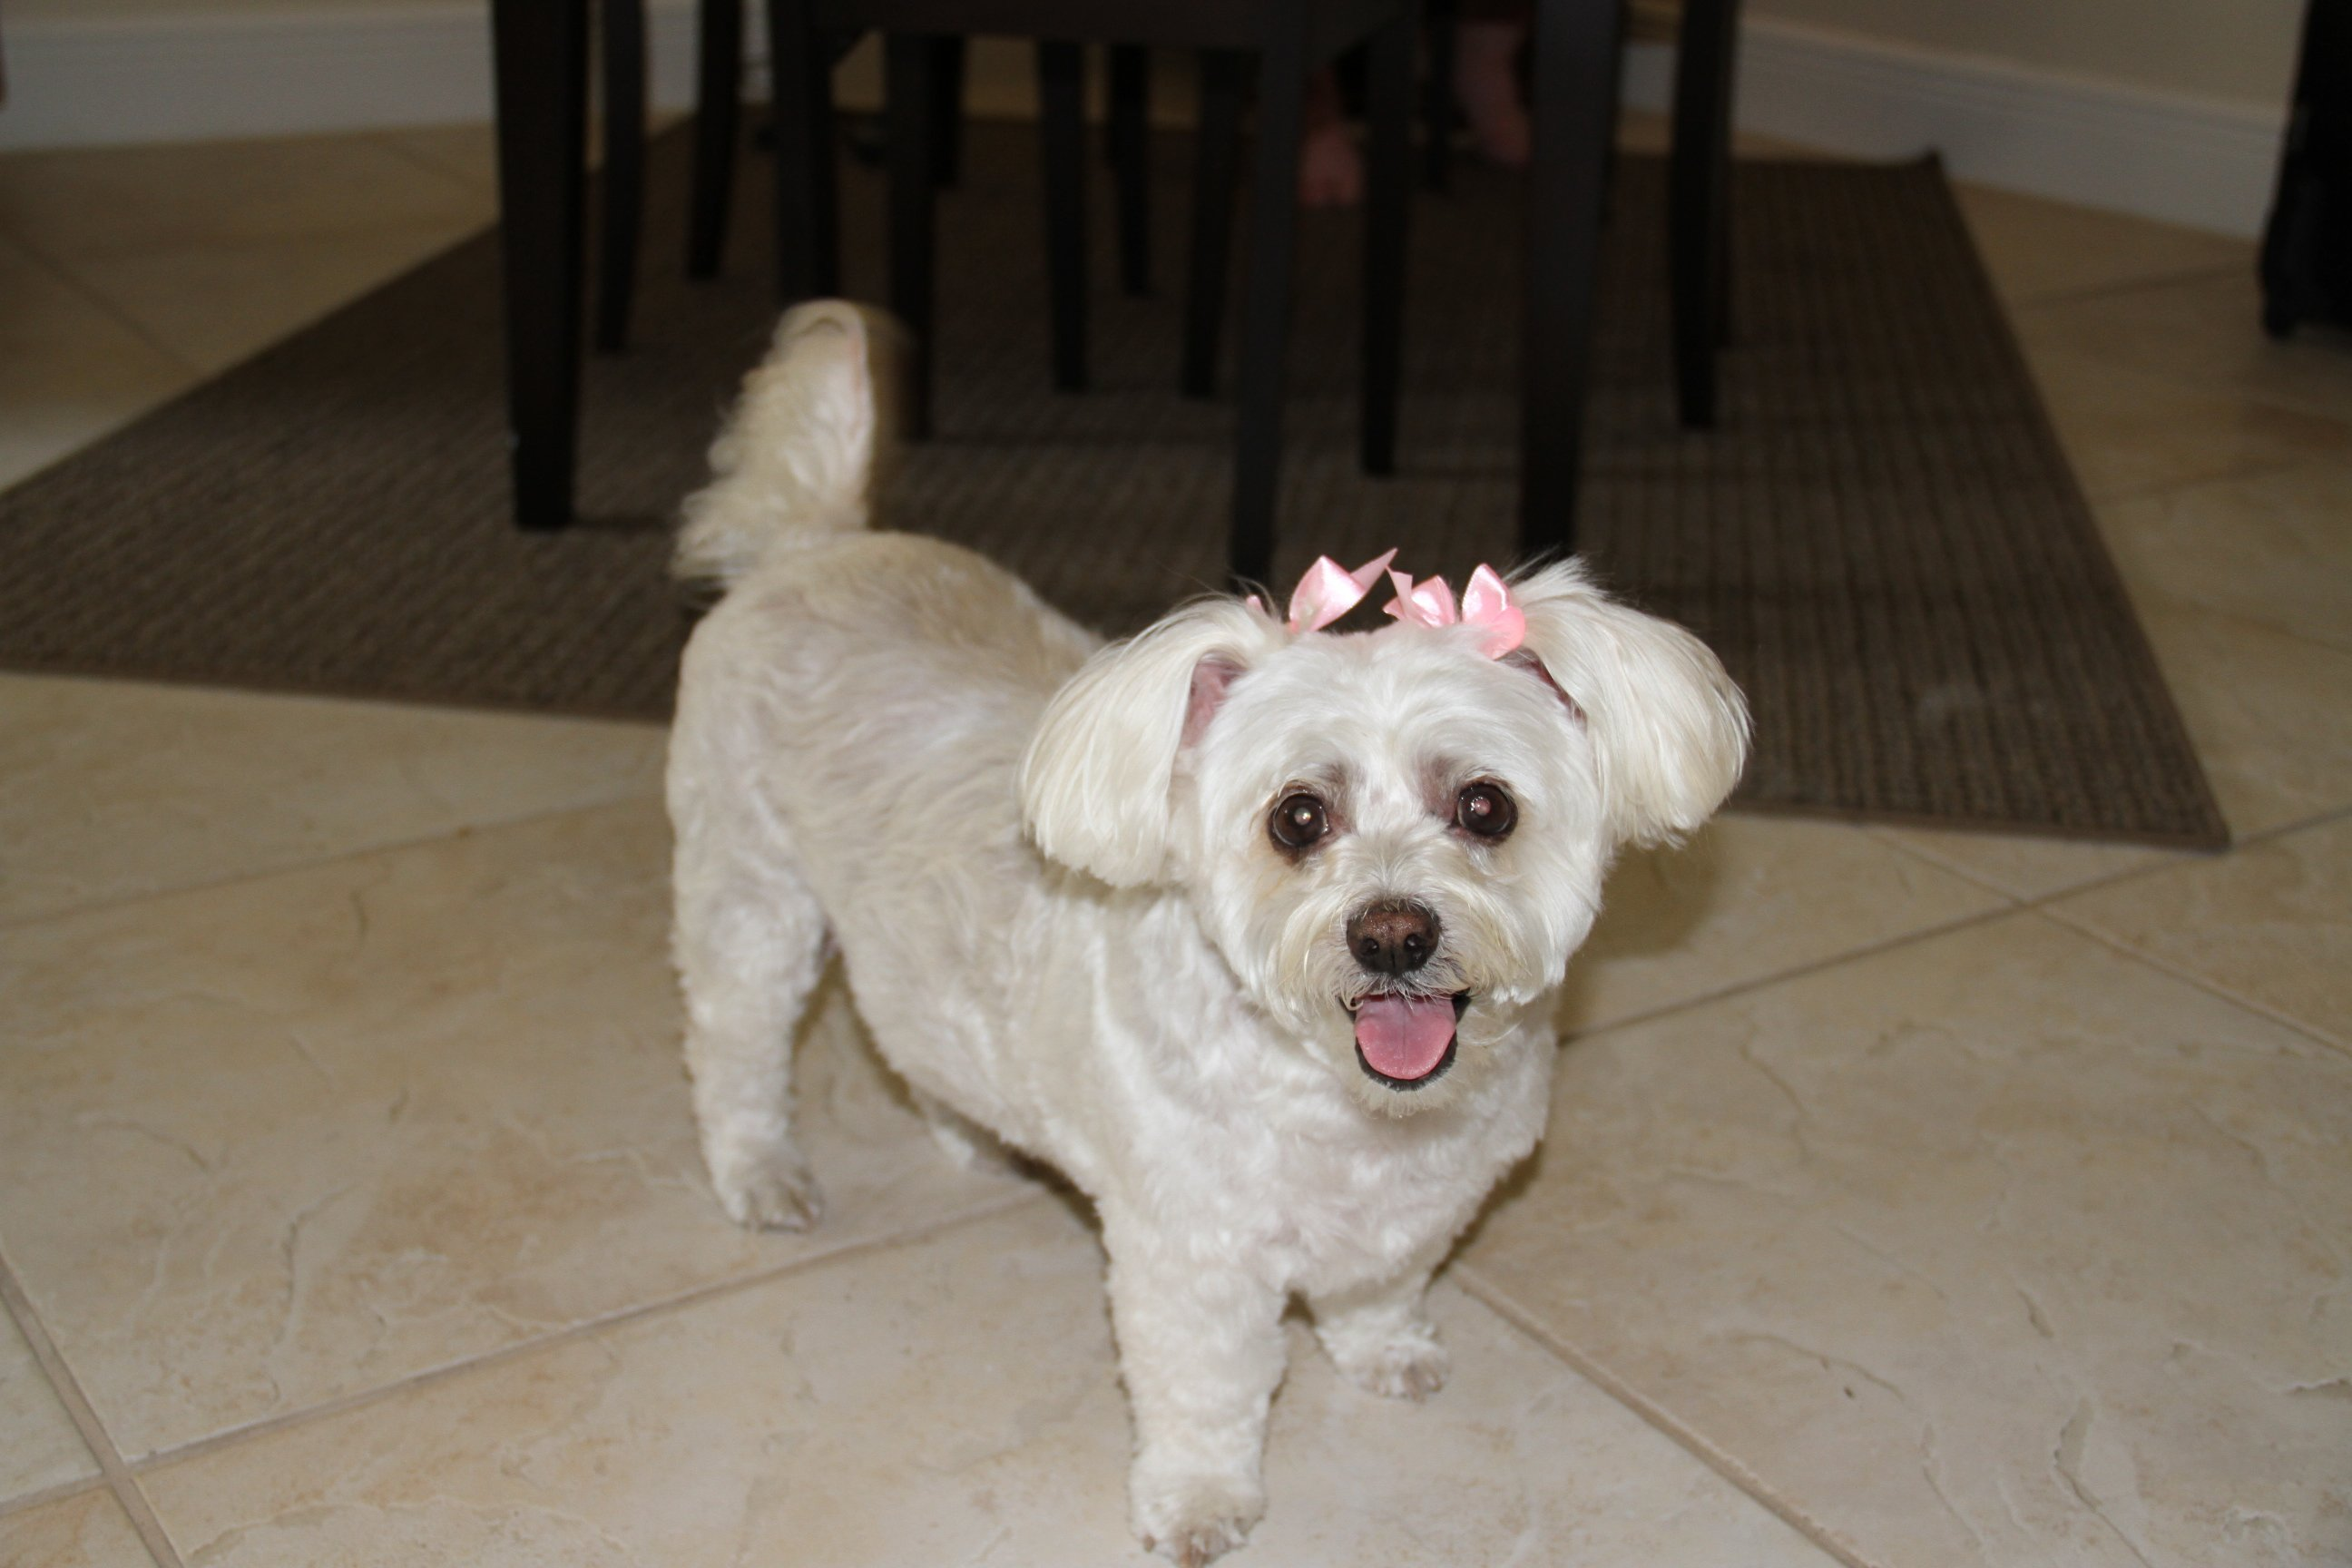 Dog with a pink bow on tile floor